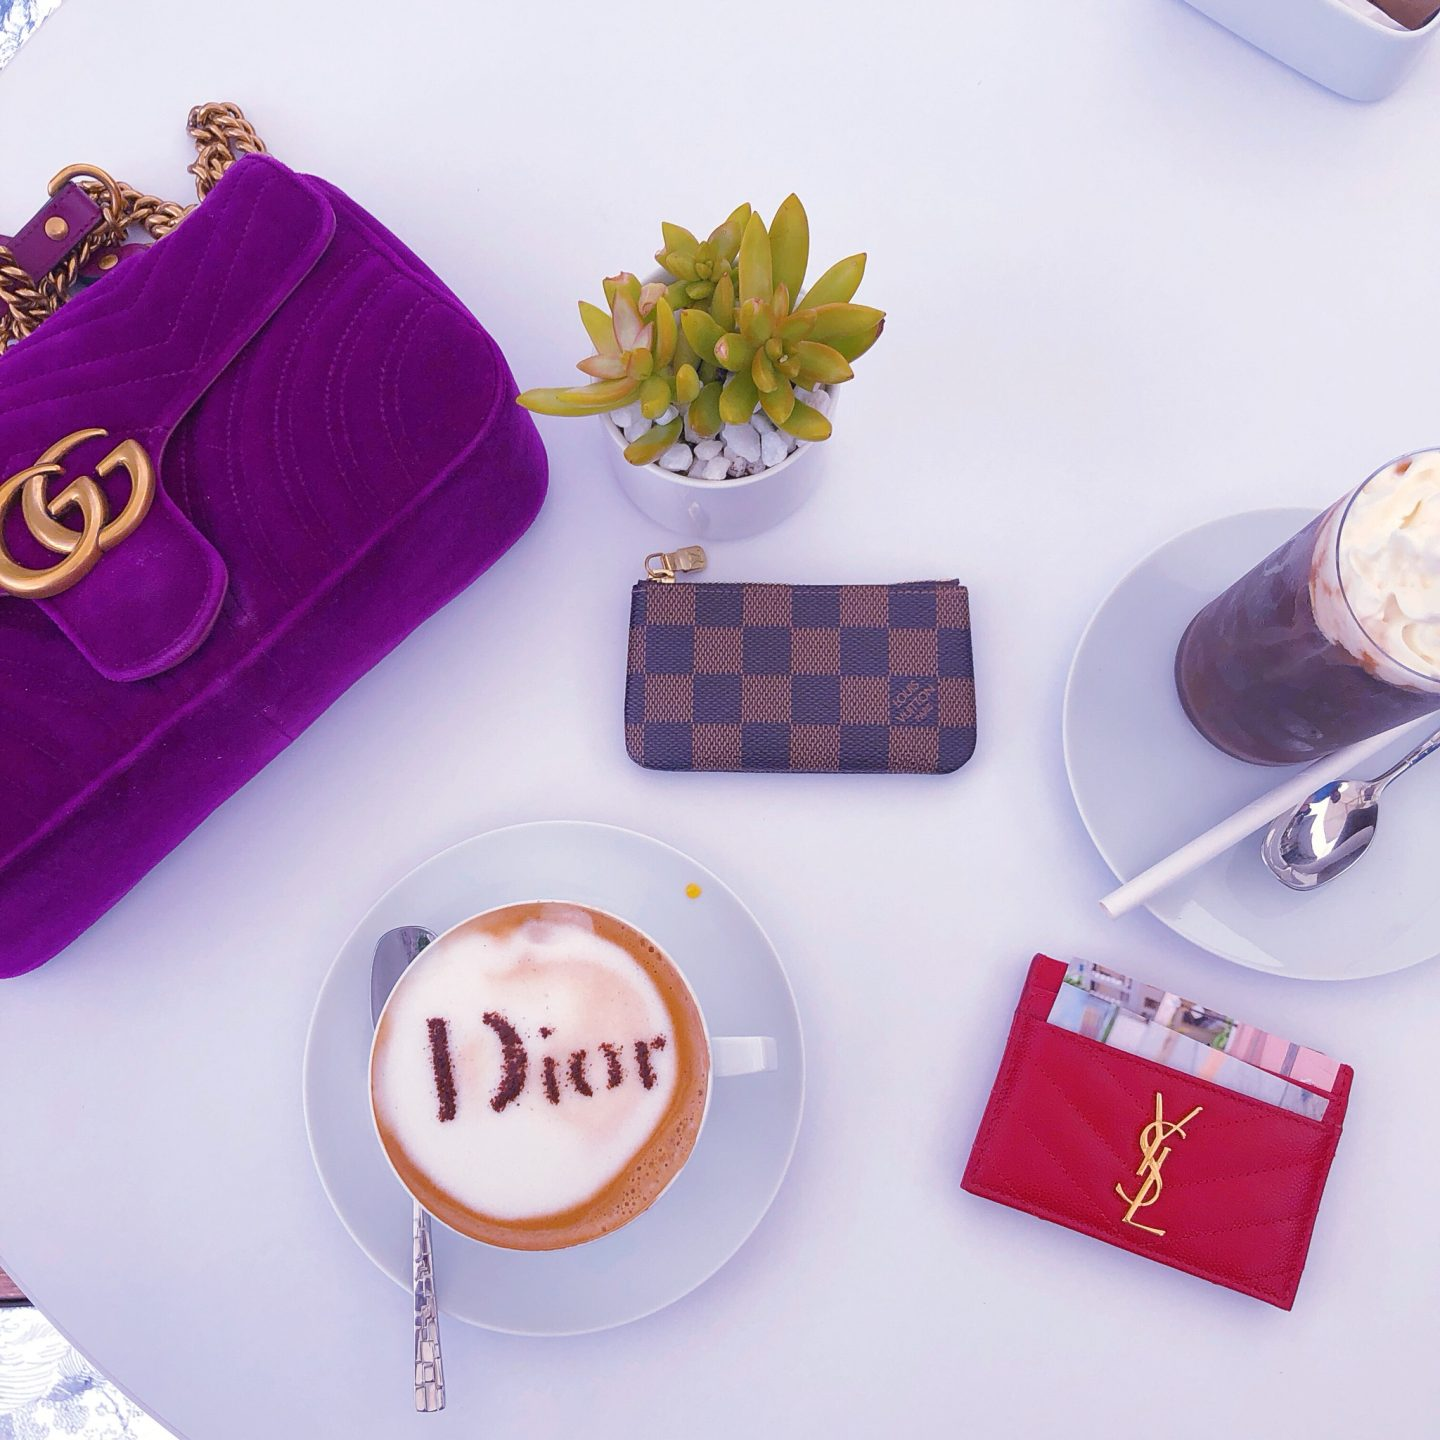 Dior Cafe Miami, cafe dior, cafe dior miami, what cafe dior miami looks like, dior latte, cafe dior latte, dior engraved latte, what dior latte looks like, gucci marmont velvet, louis vuitton key pouch damier ebene, ysl card case red